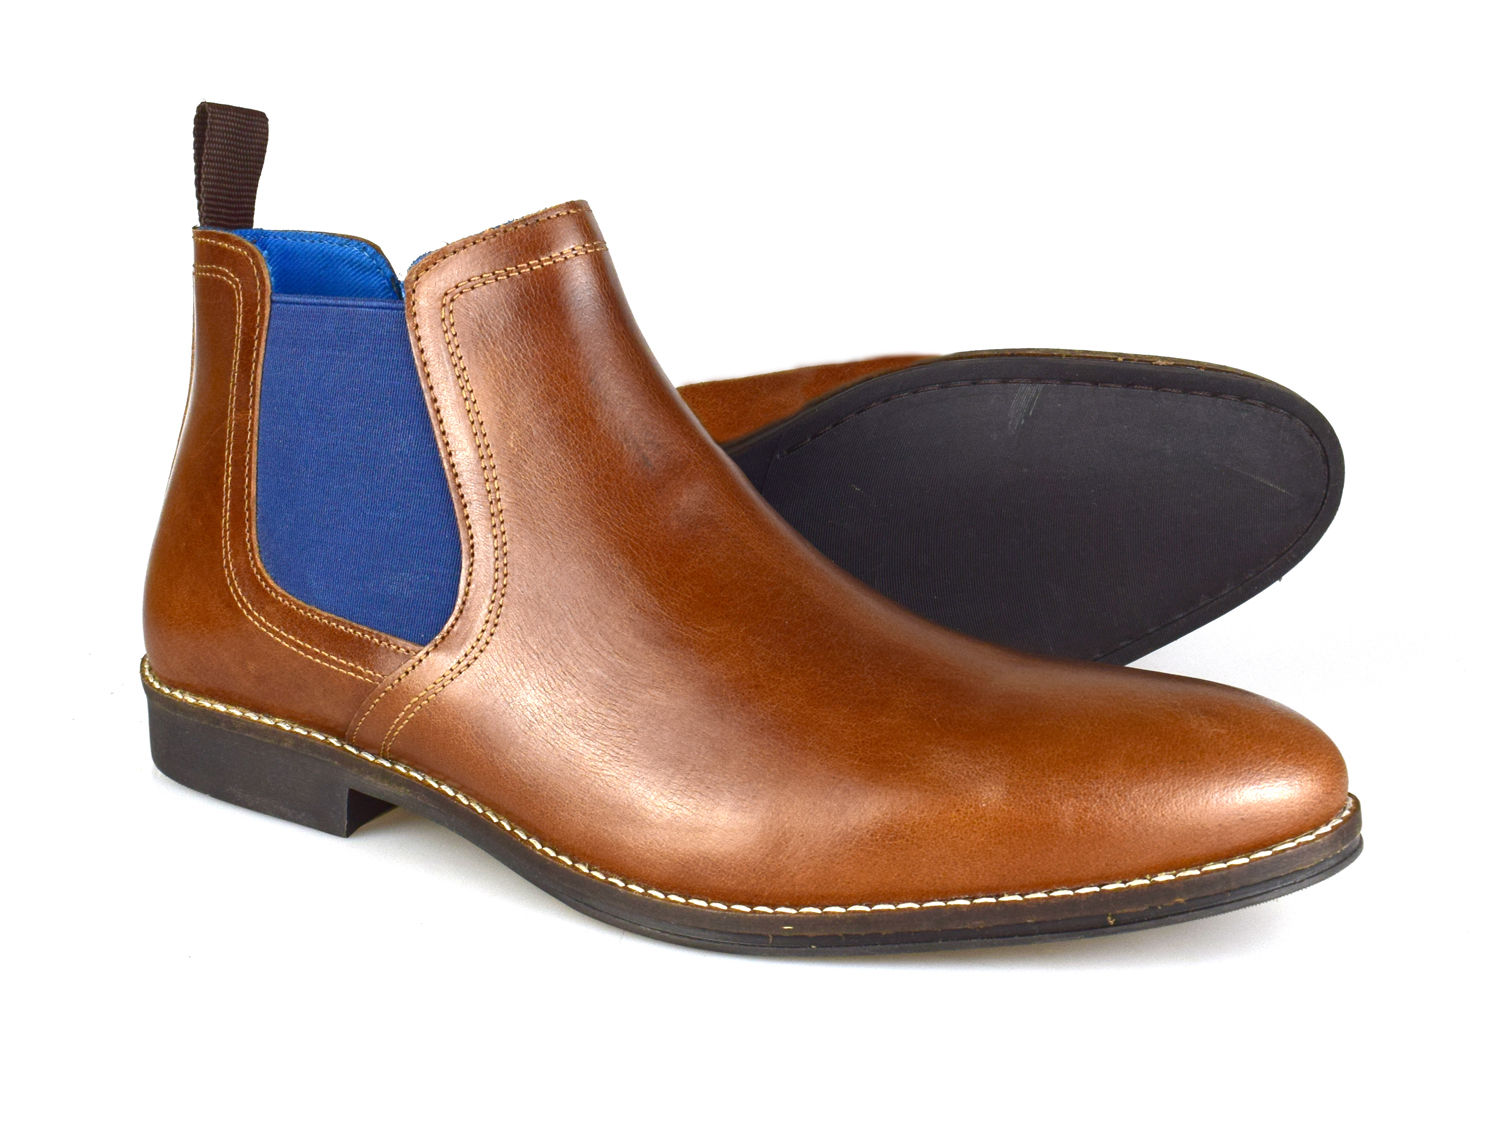 Blue Leather Chelsea Boots RRP £50 Free UK P/&P! Red Tape Stockwood Tan